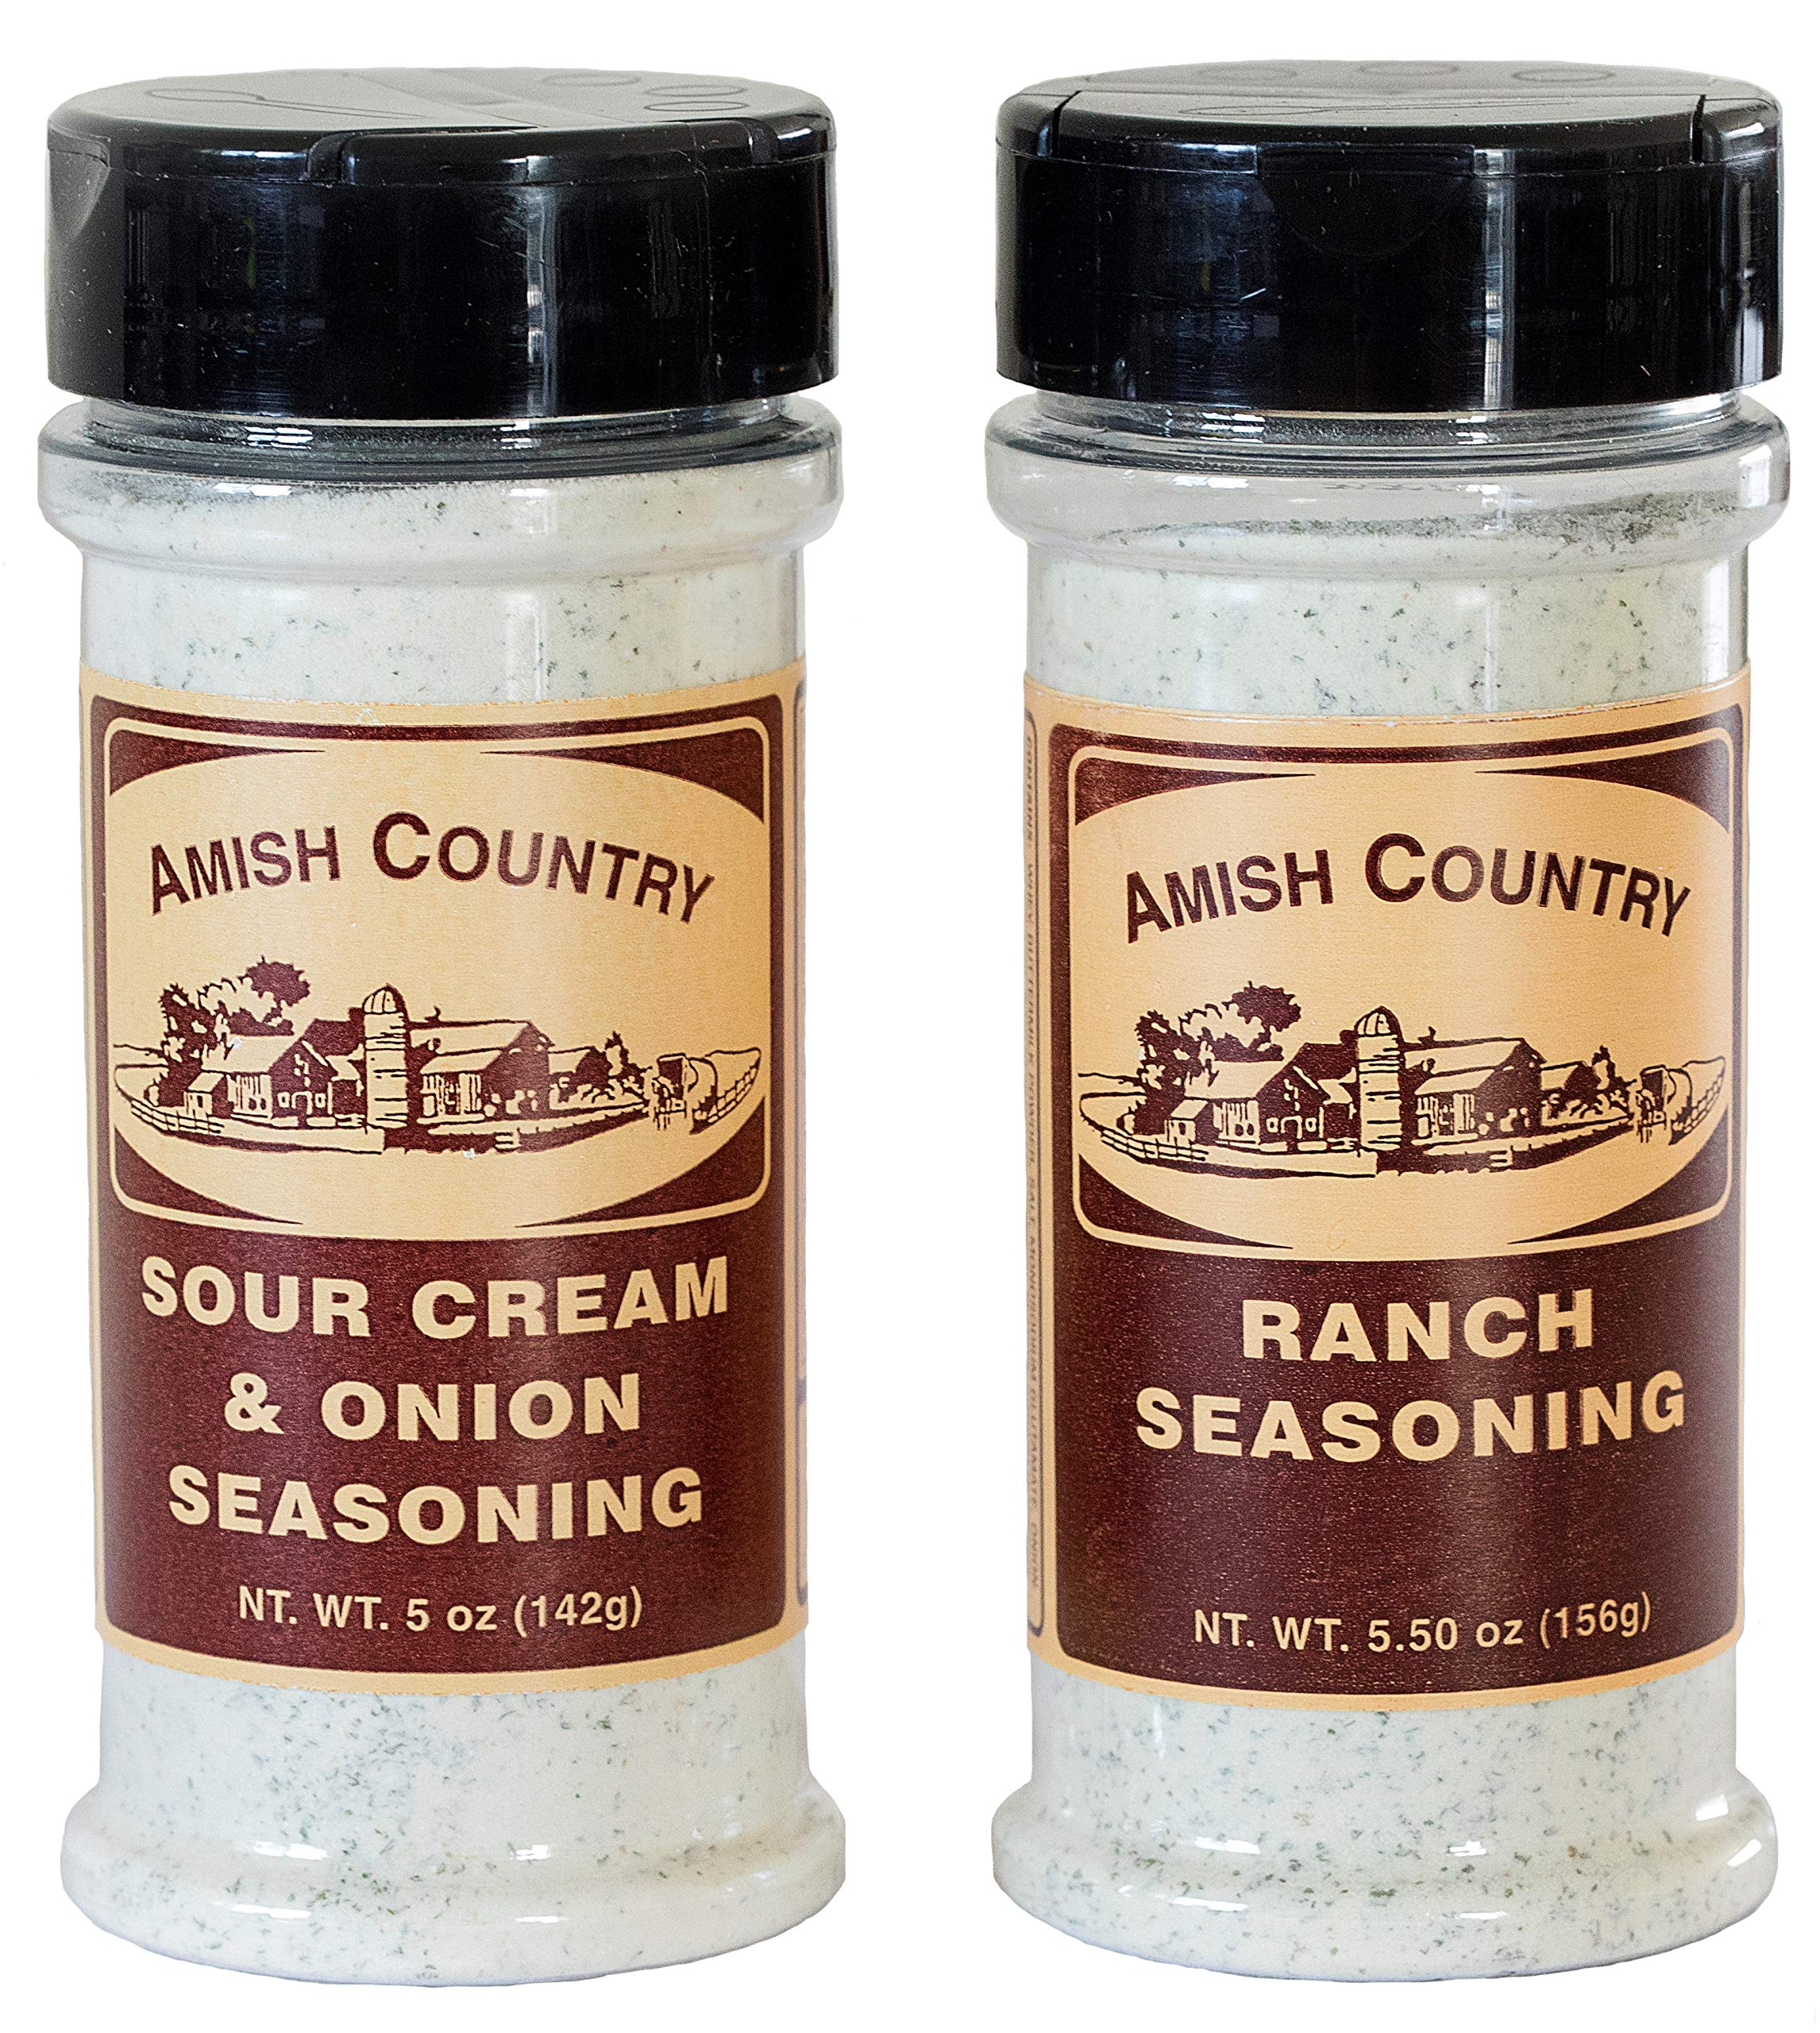 Amish Country Popcorn - Sour Cream and Onion & Ranch Popcorn Seasoning (2 Pack) Variety - Old Fashioned With Recipe Guide